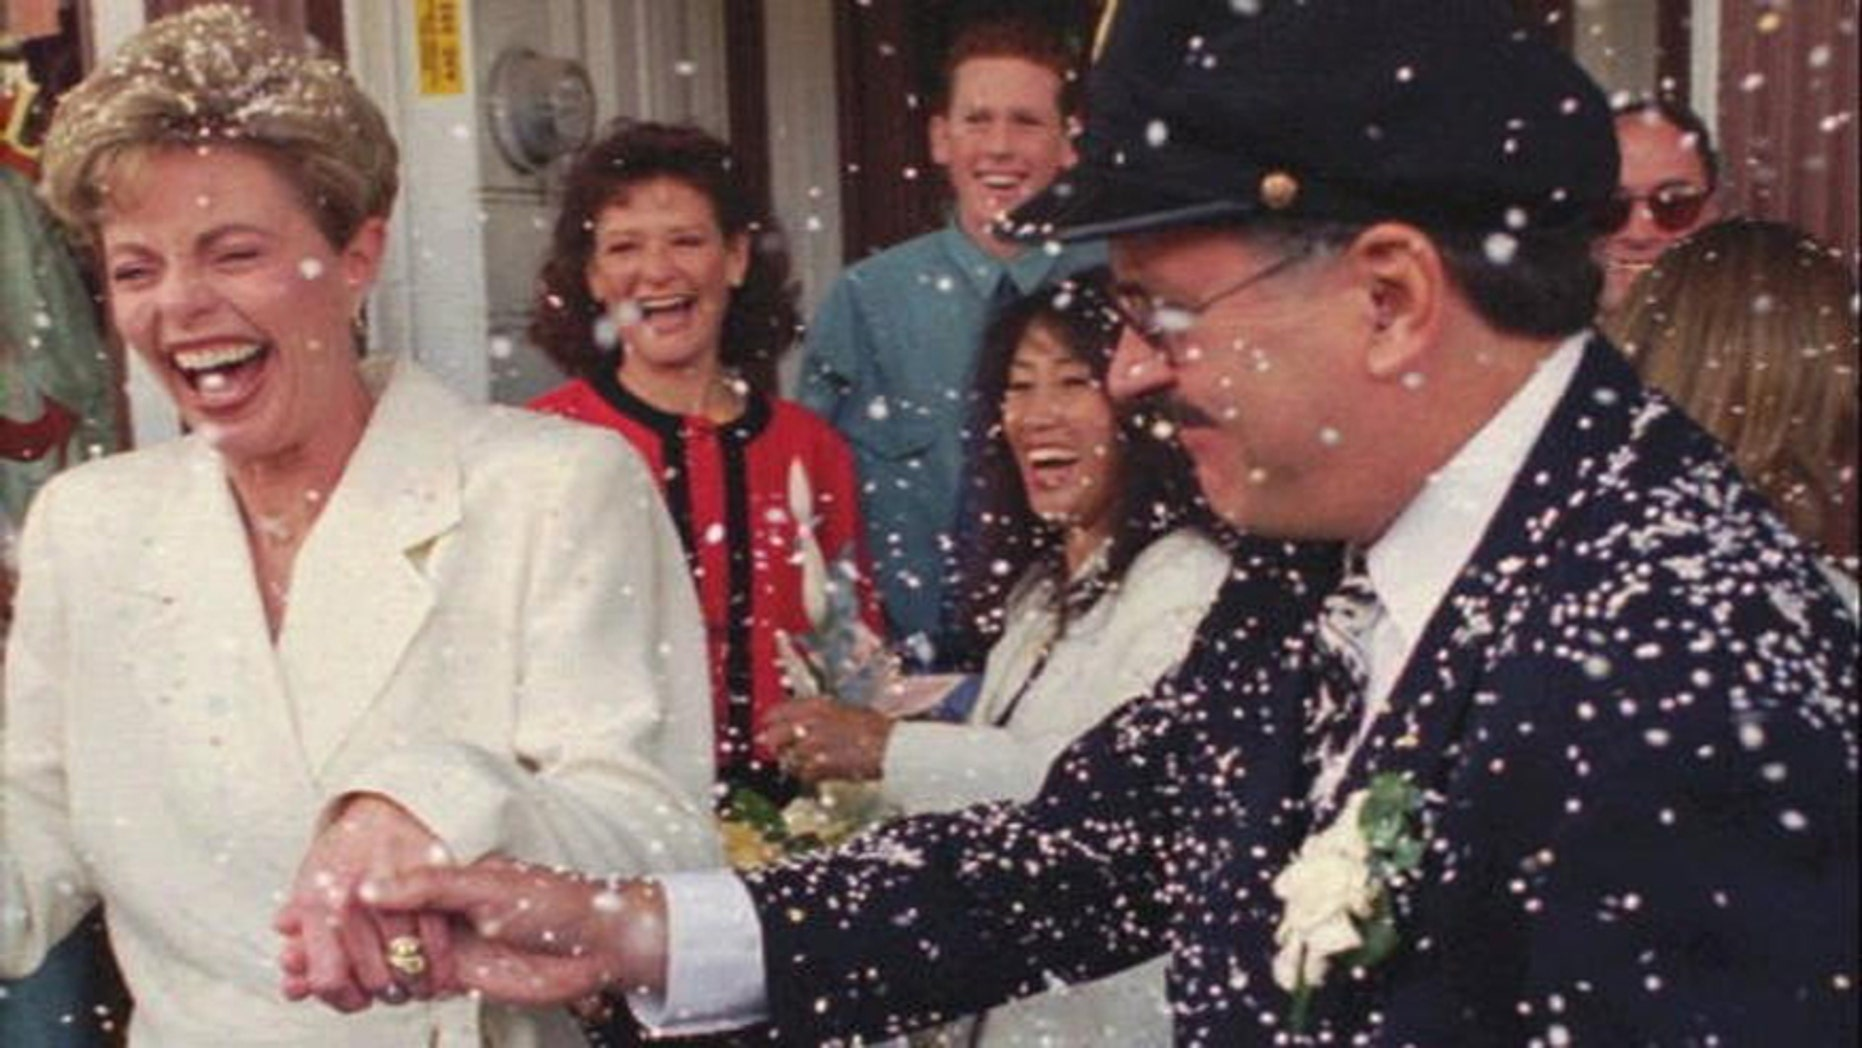 """Toni Tennille (L) and Daryl Dragon singing duo """"The Captain and Tennille"""", after renewing wedding vows in 1995."""